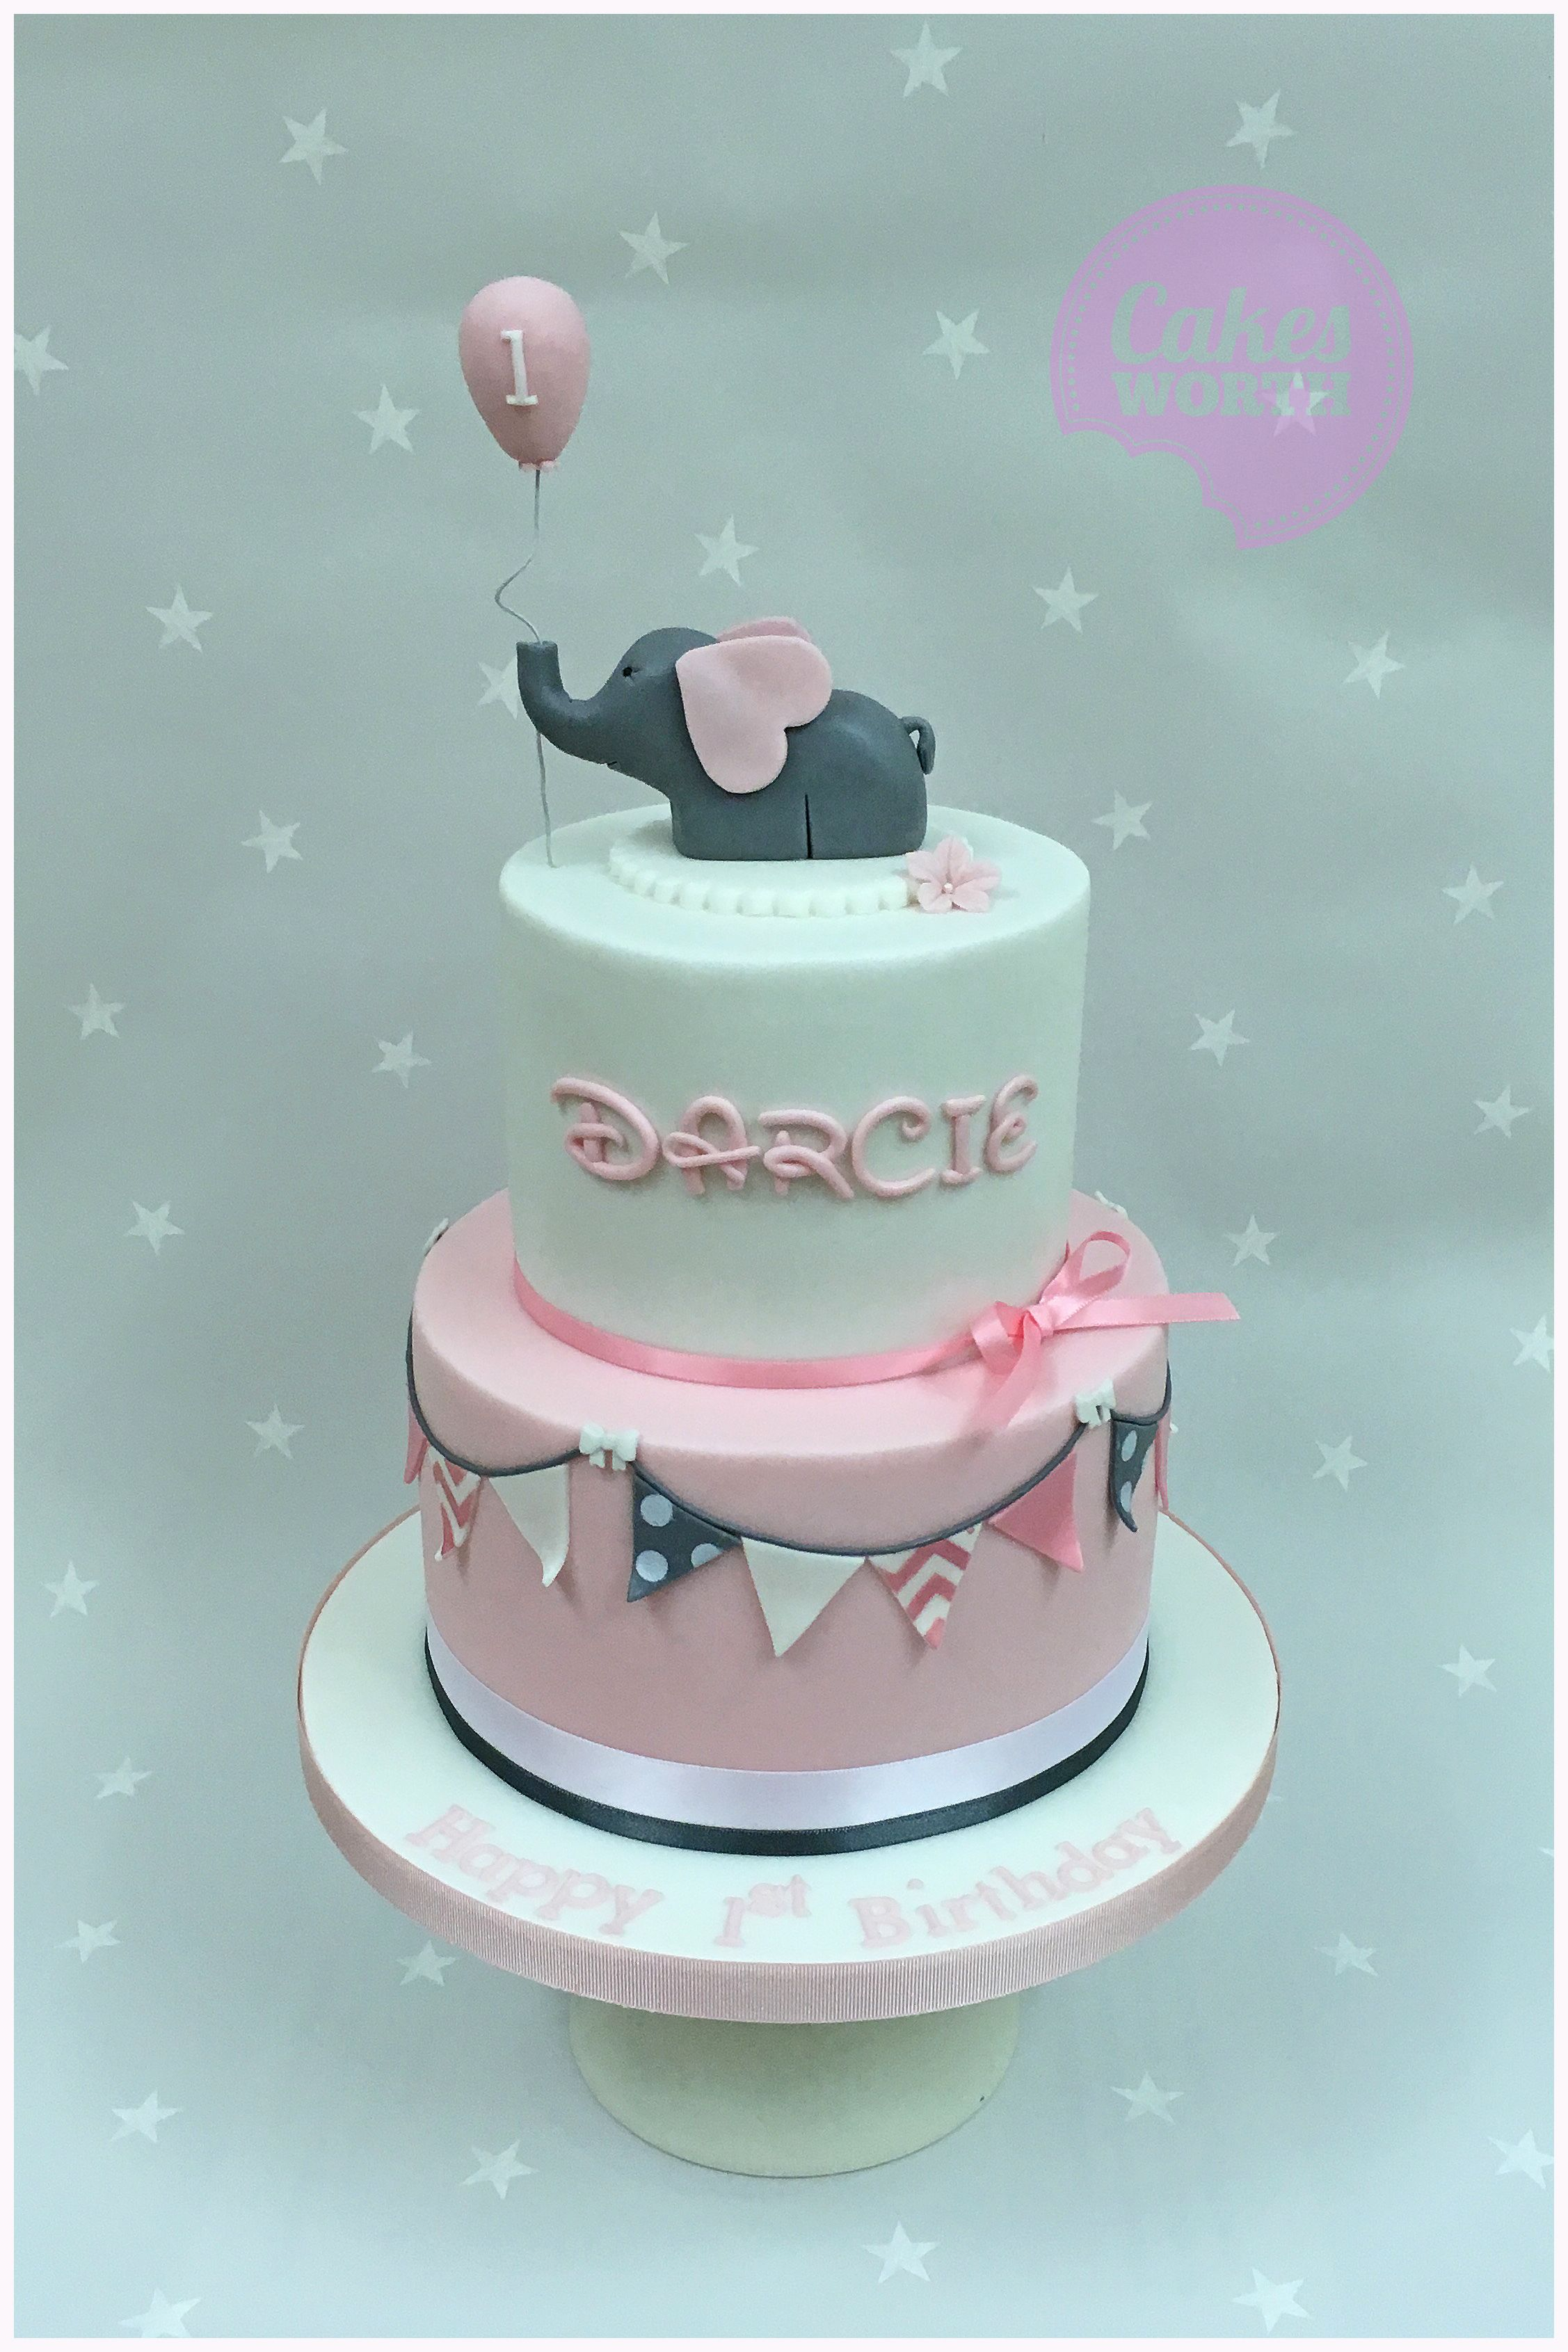 Pretty Two Tier Girls 1st Birthday Cake In Pink And Grey With Decorated Bunting Edible Elephant